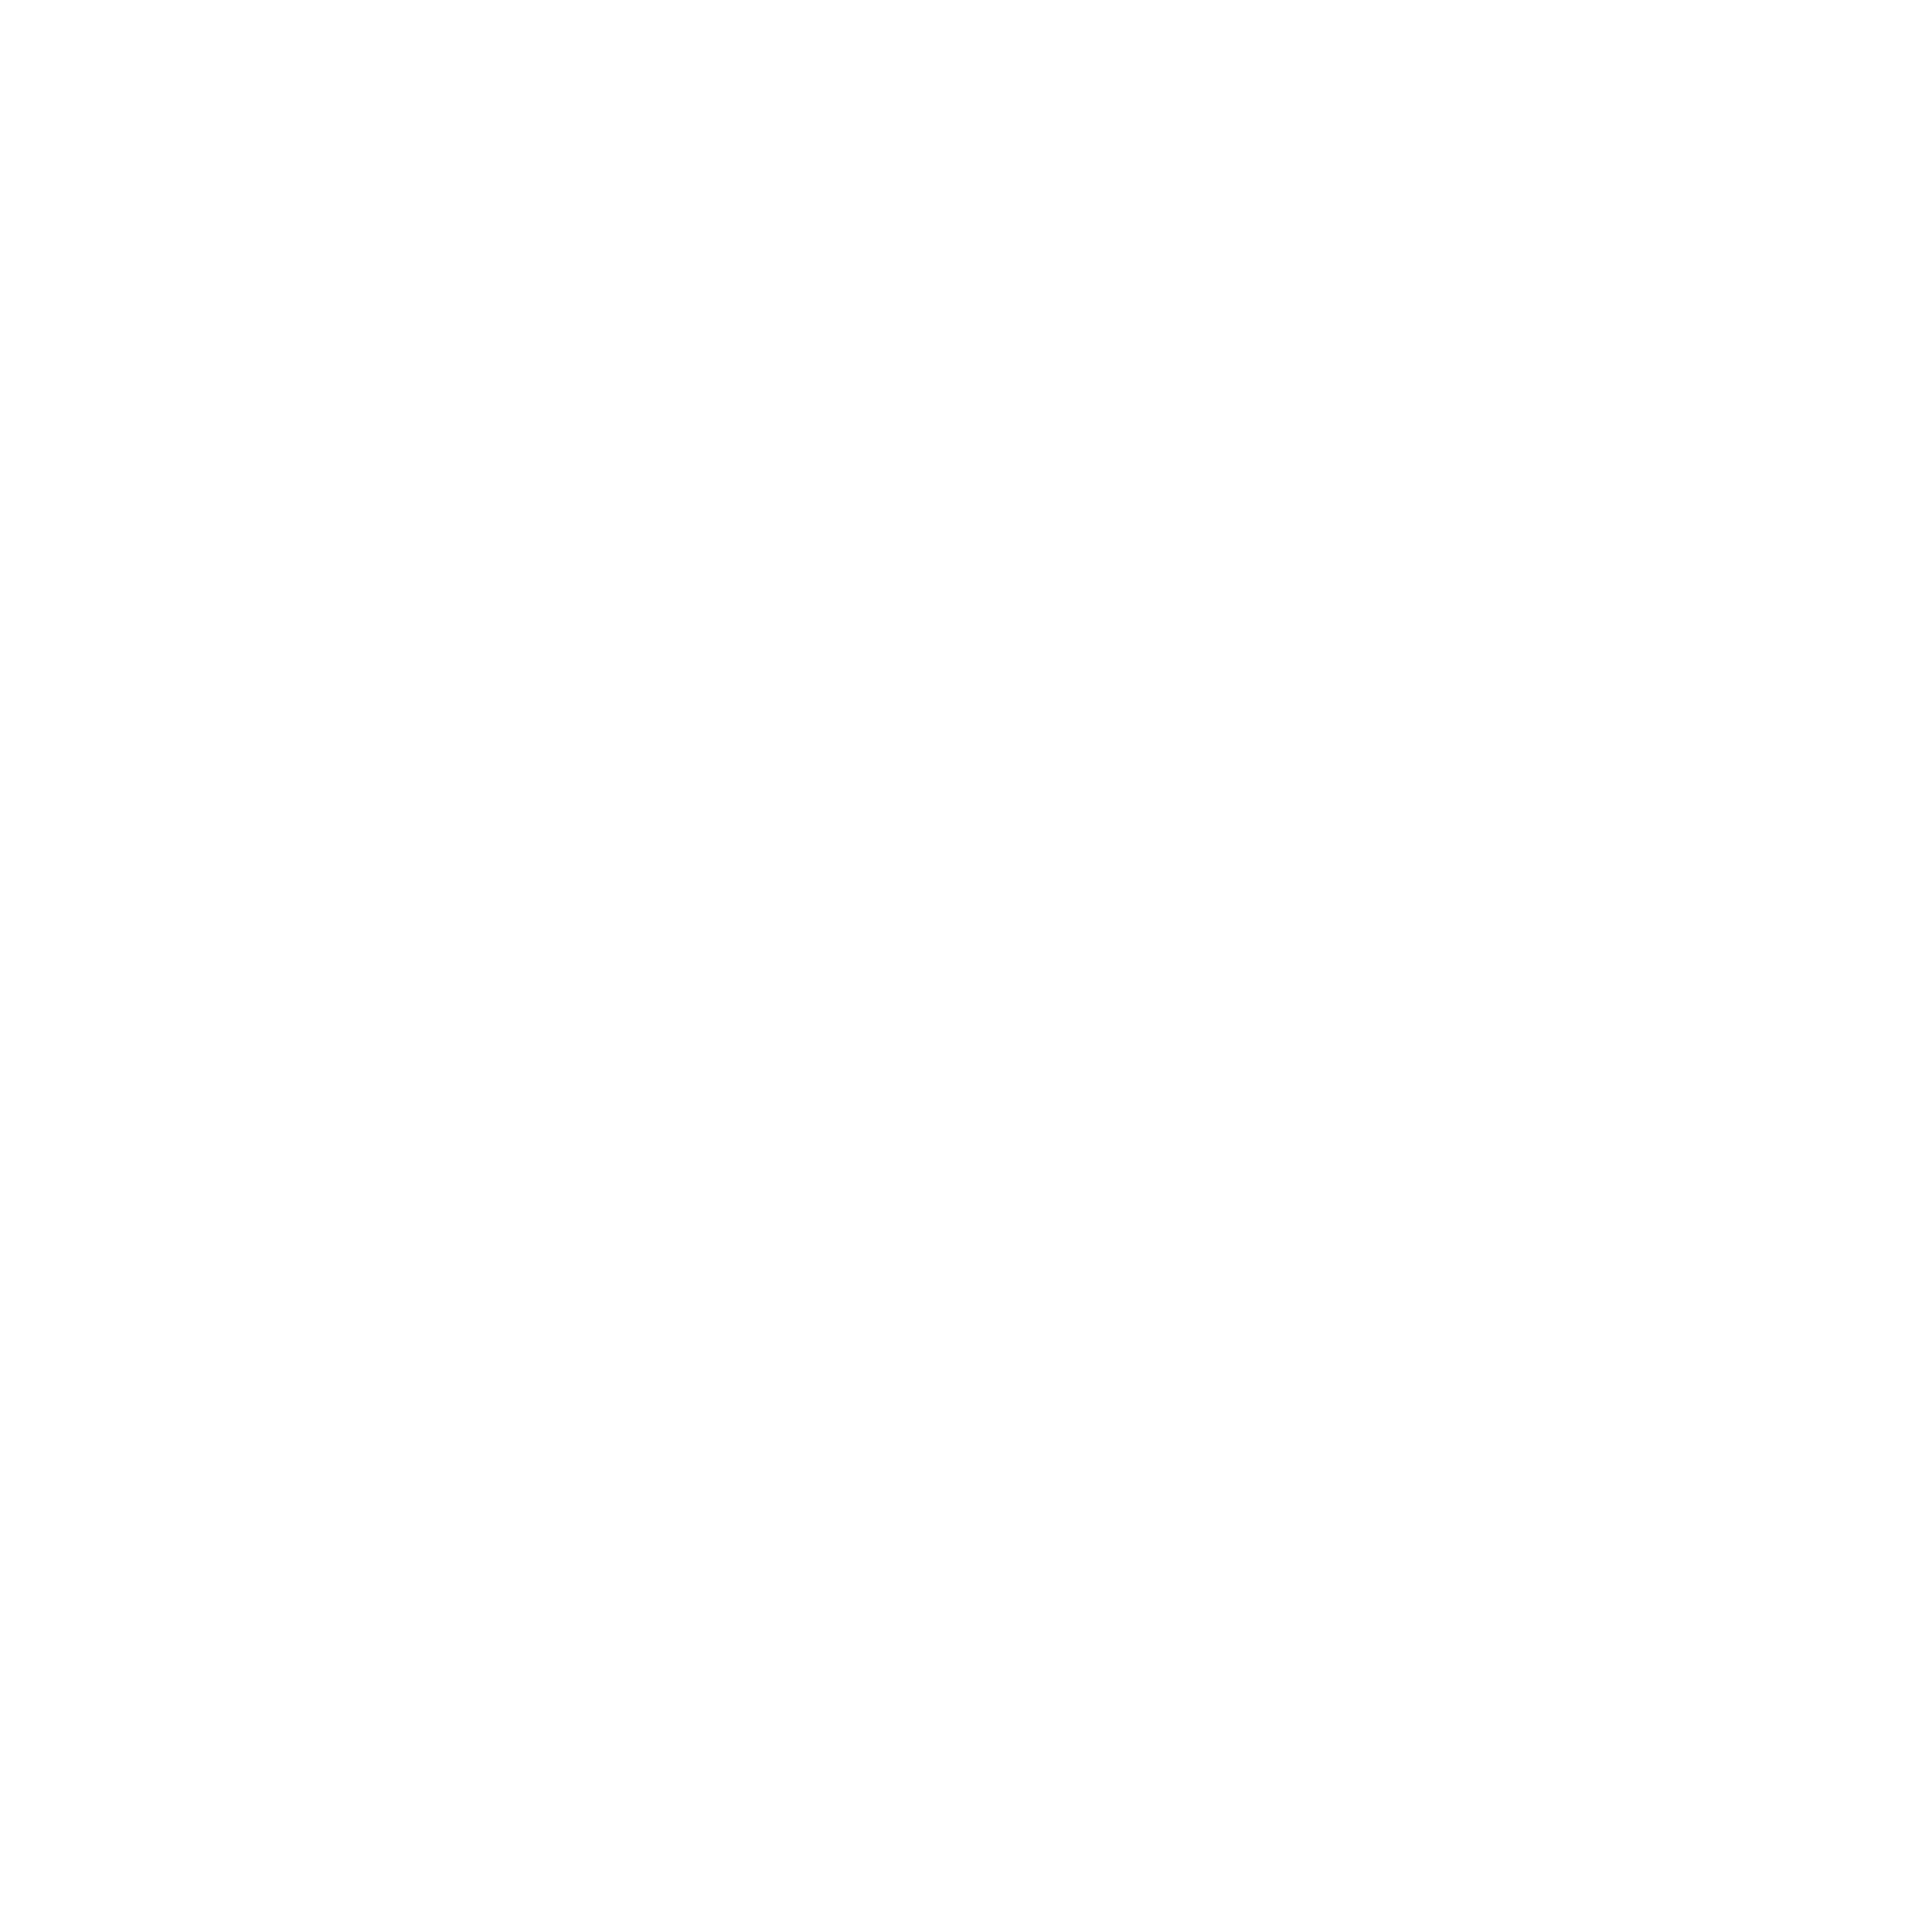 Great to work with?